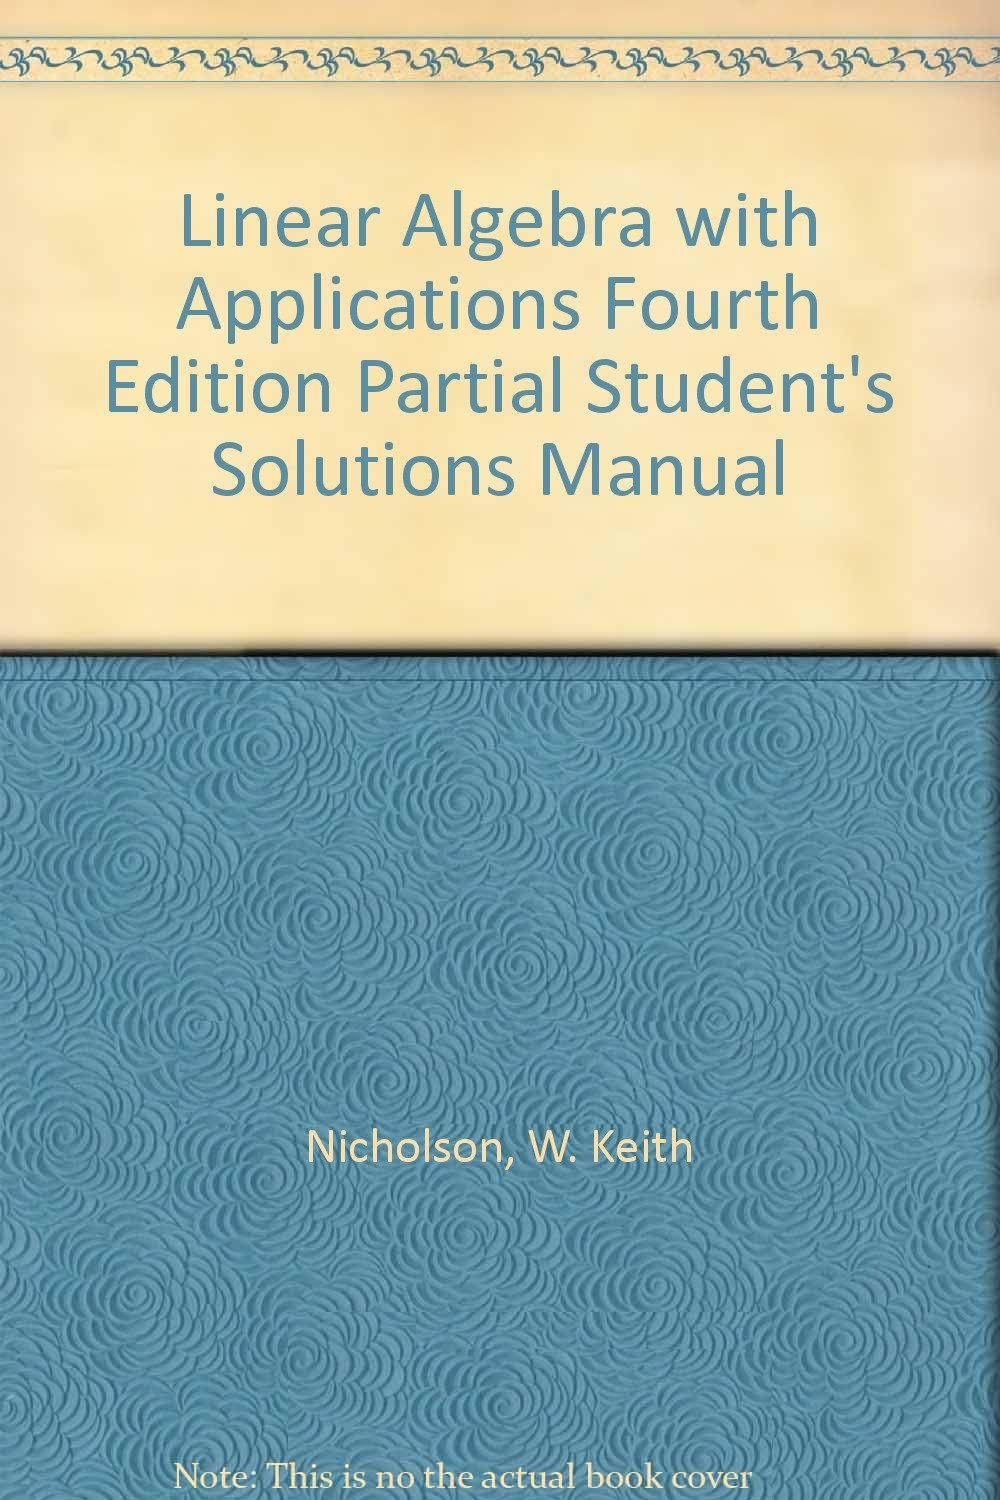 Linear Algebra with Applications Fourth Edition Partial Student's Solutions  Manual: W. Keith Nicholson: Amazon.com: Books